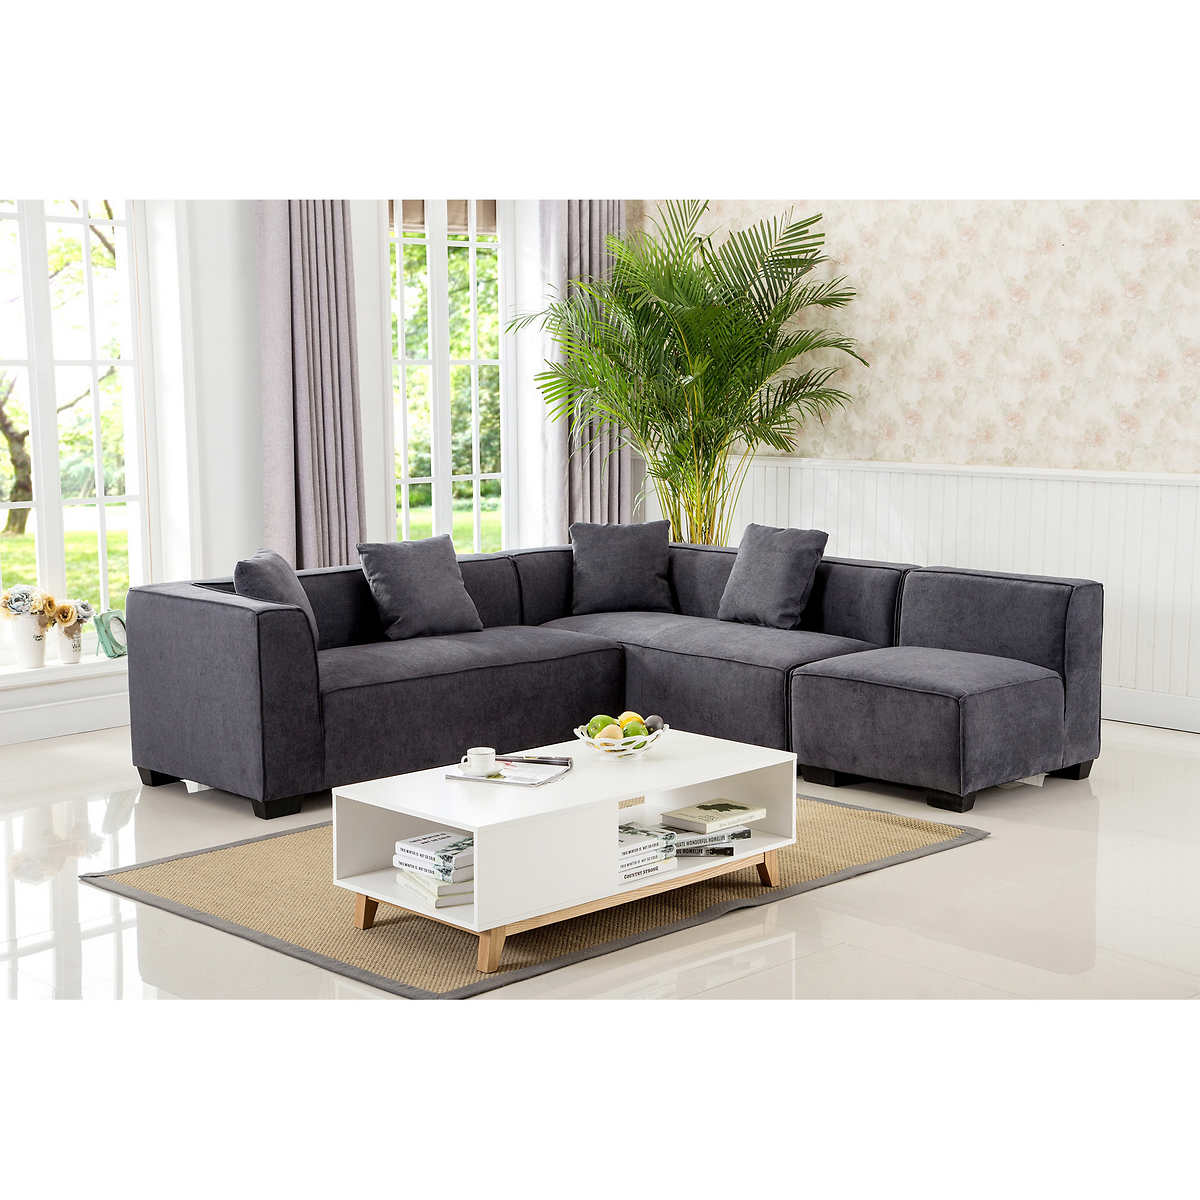 sectionals  chaises  costco - cobrizio dark grey modular sectional